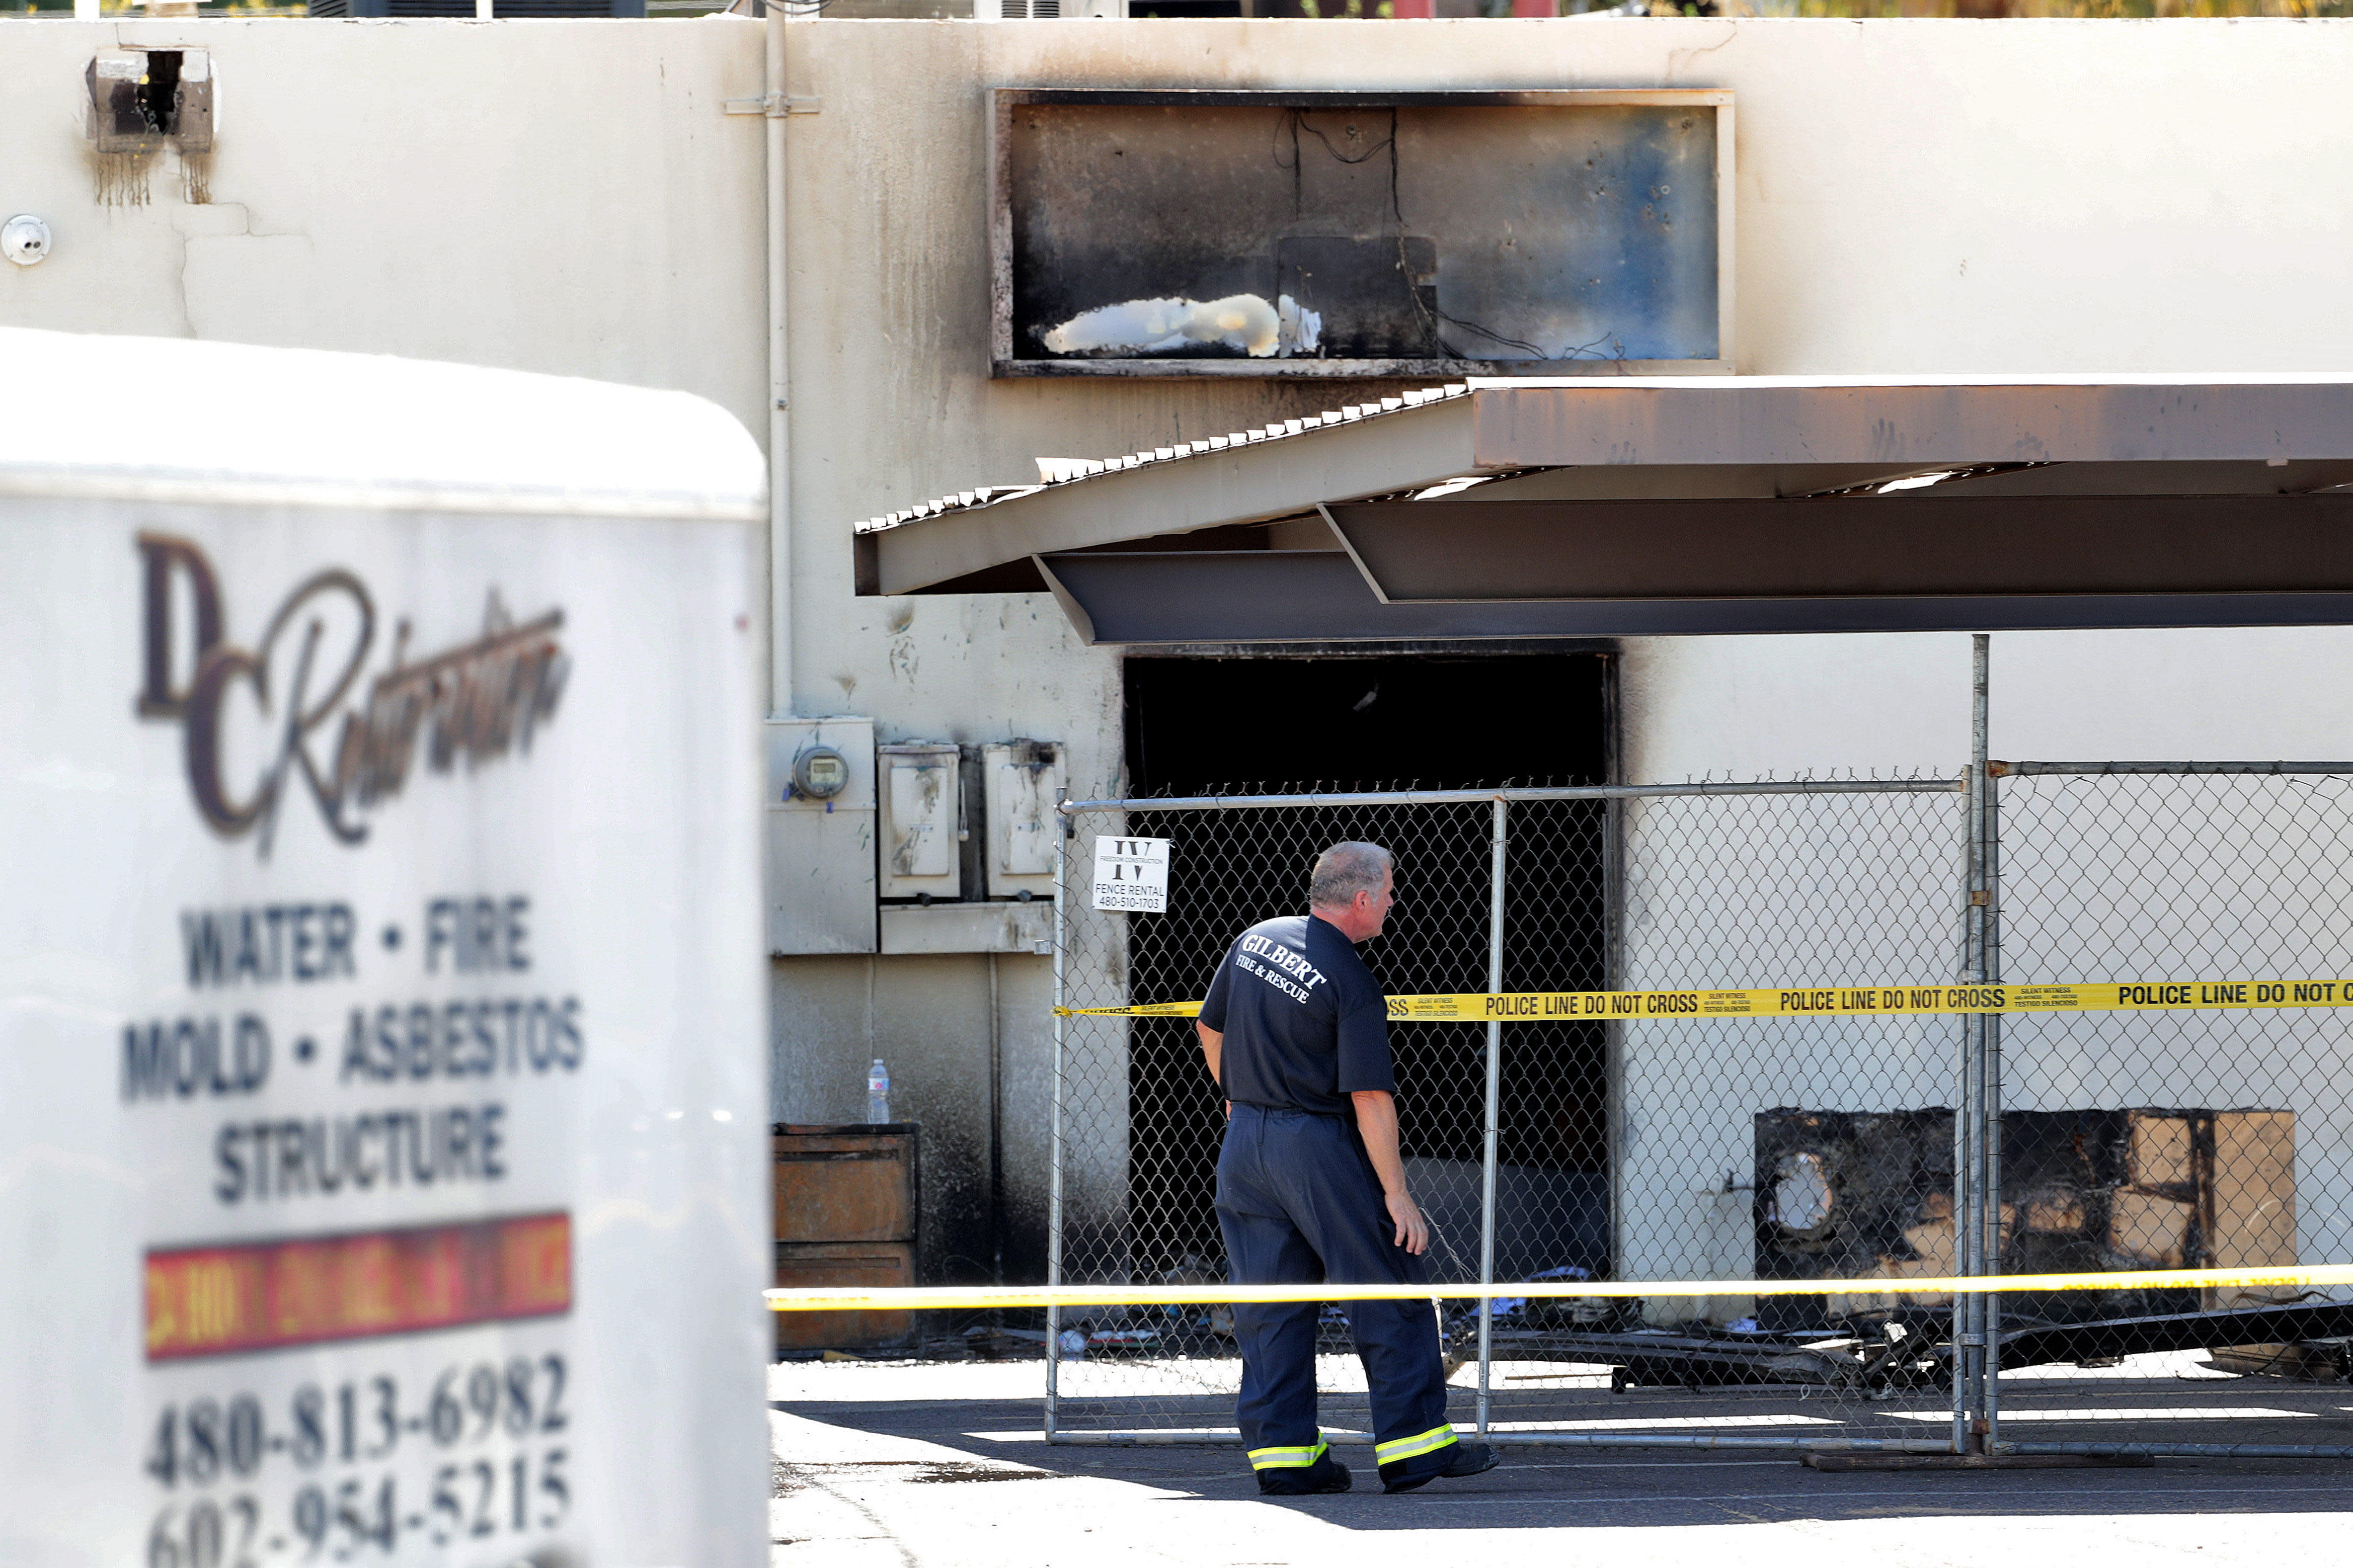 Man charged with arson after fire at Arizona county Dems' office